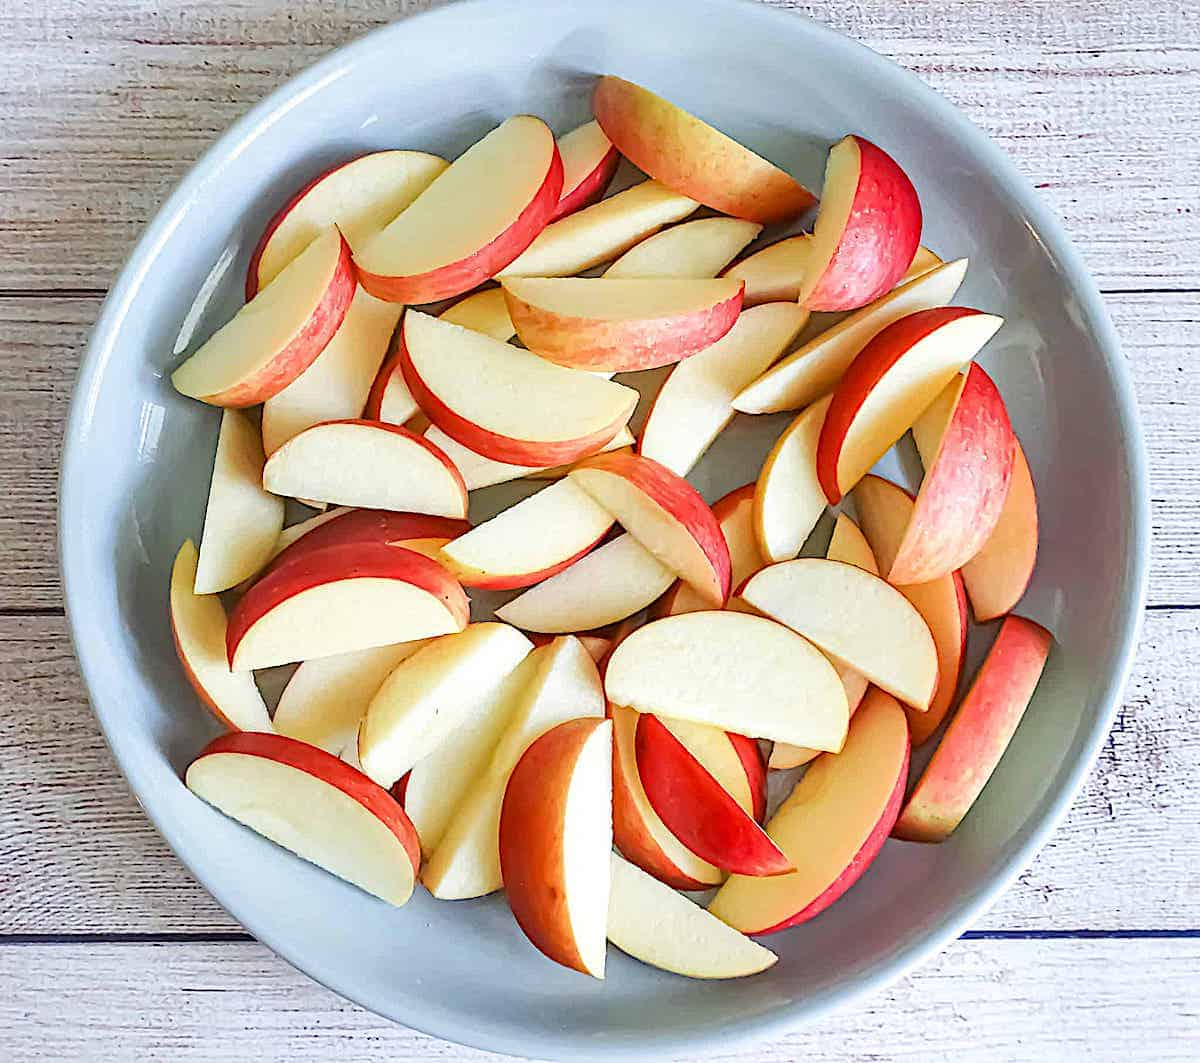 apple slices on a grey plate